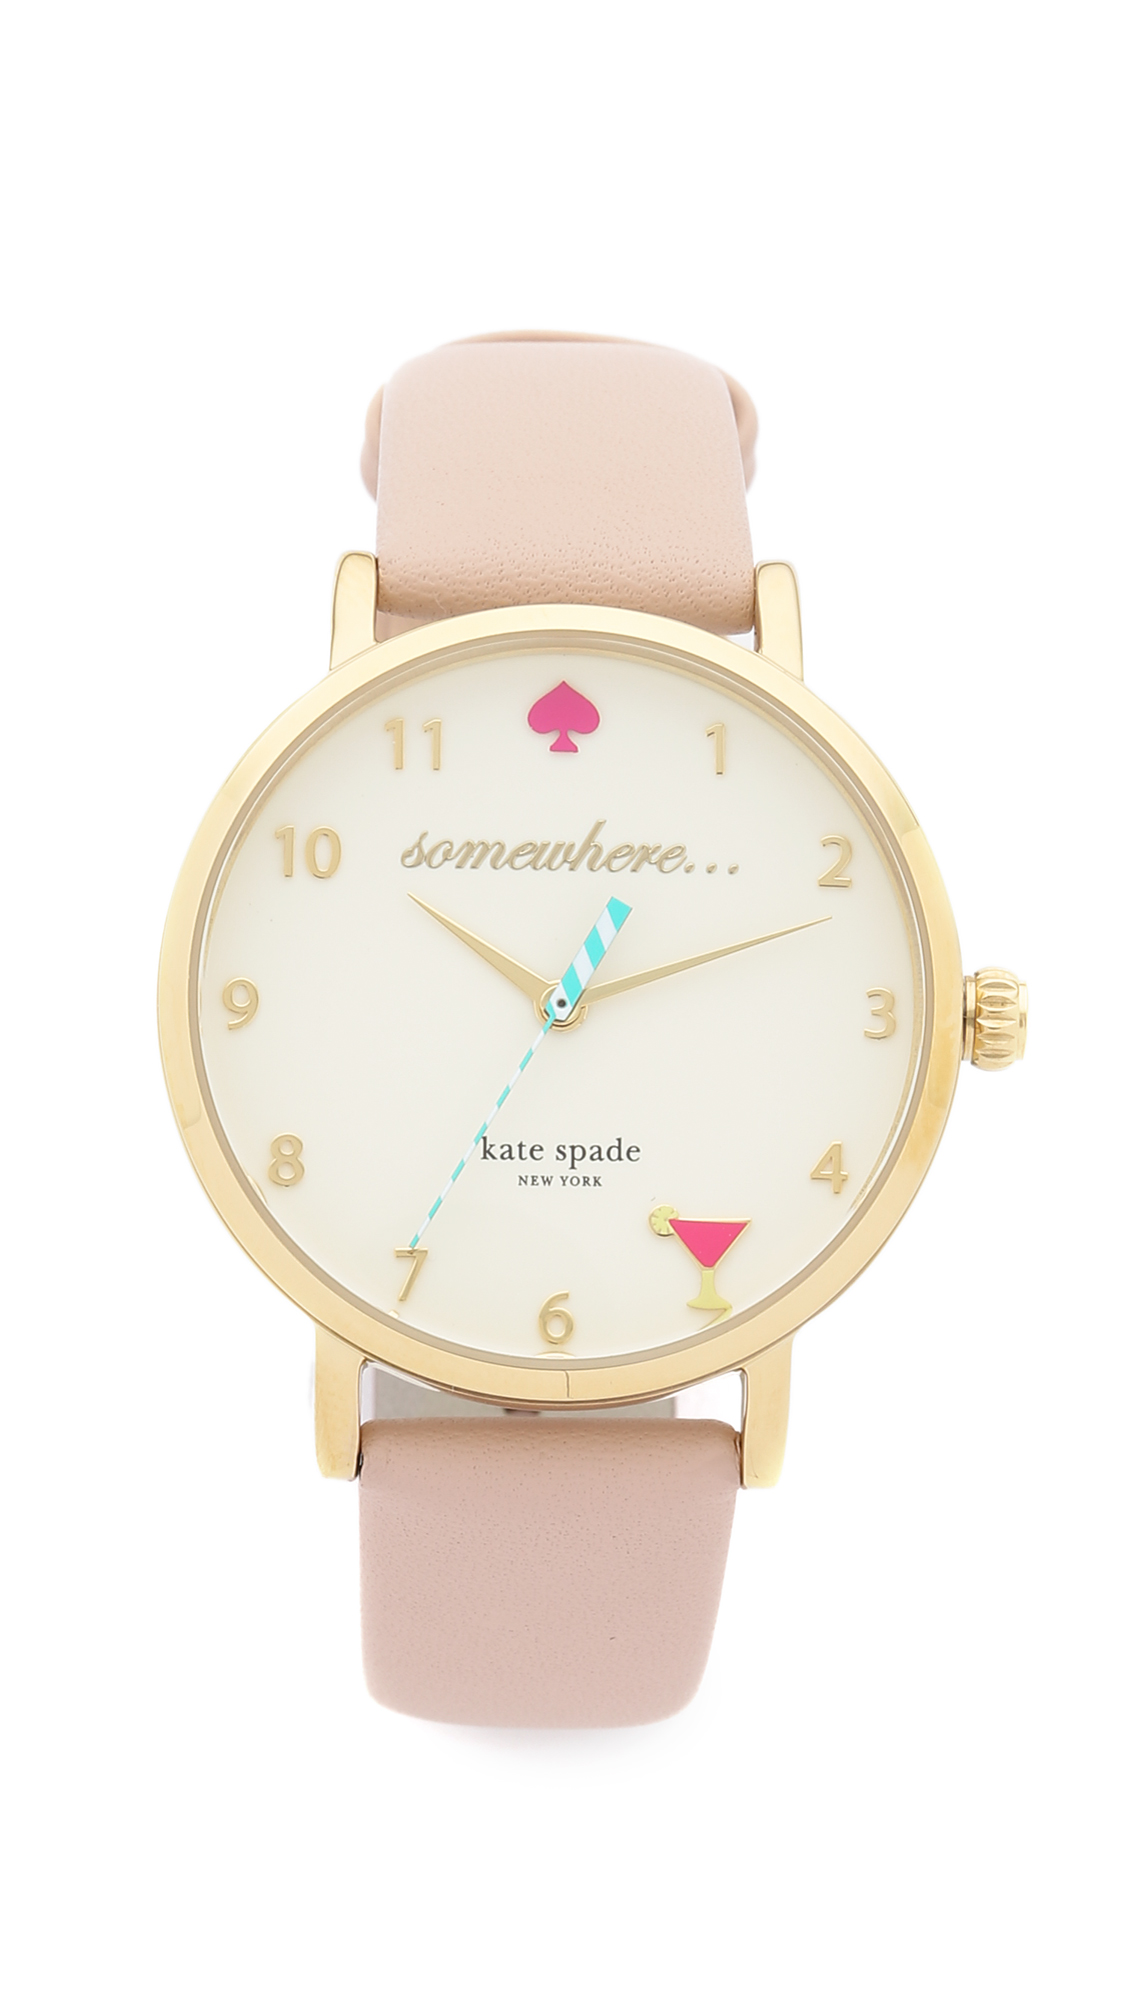 Kate Spade New York 5 O'Clock Metro Leather Watch - Vachetta/Gold at Shopbop